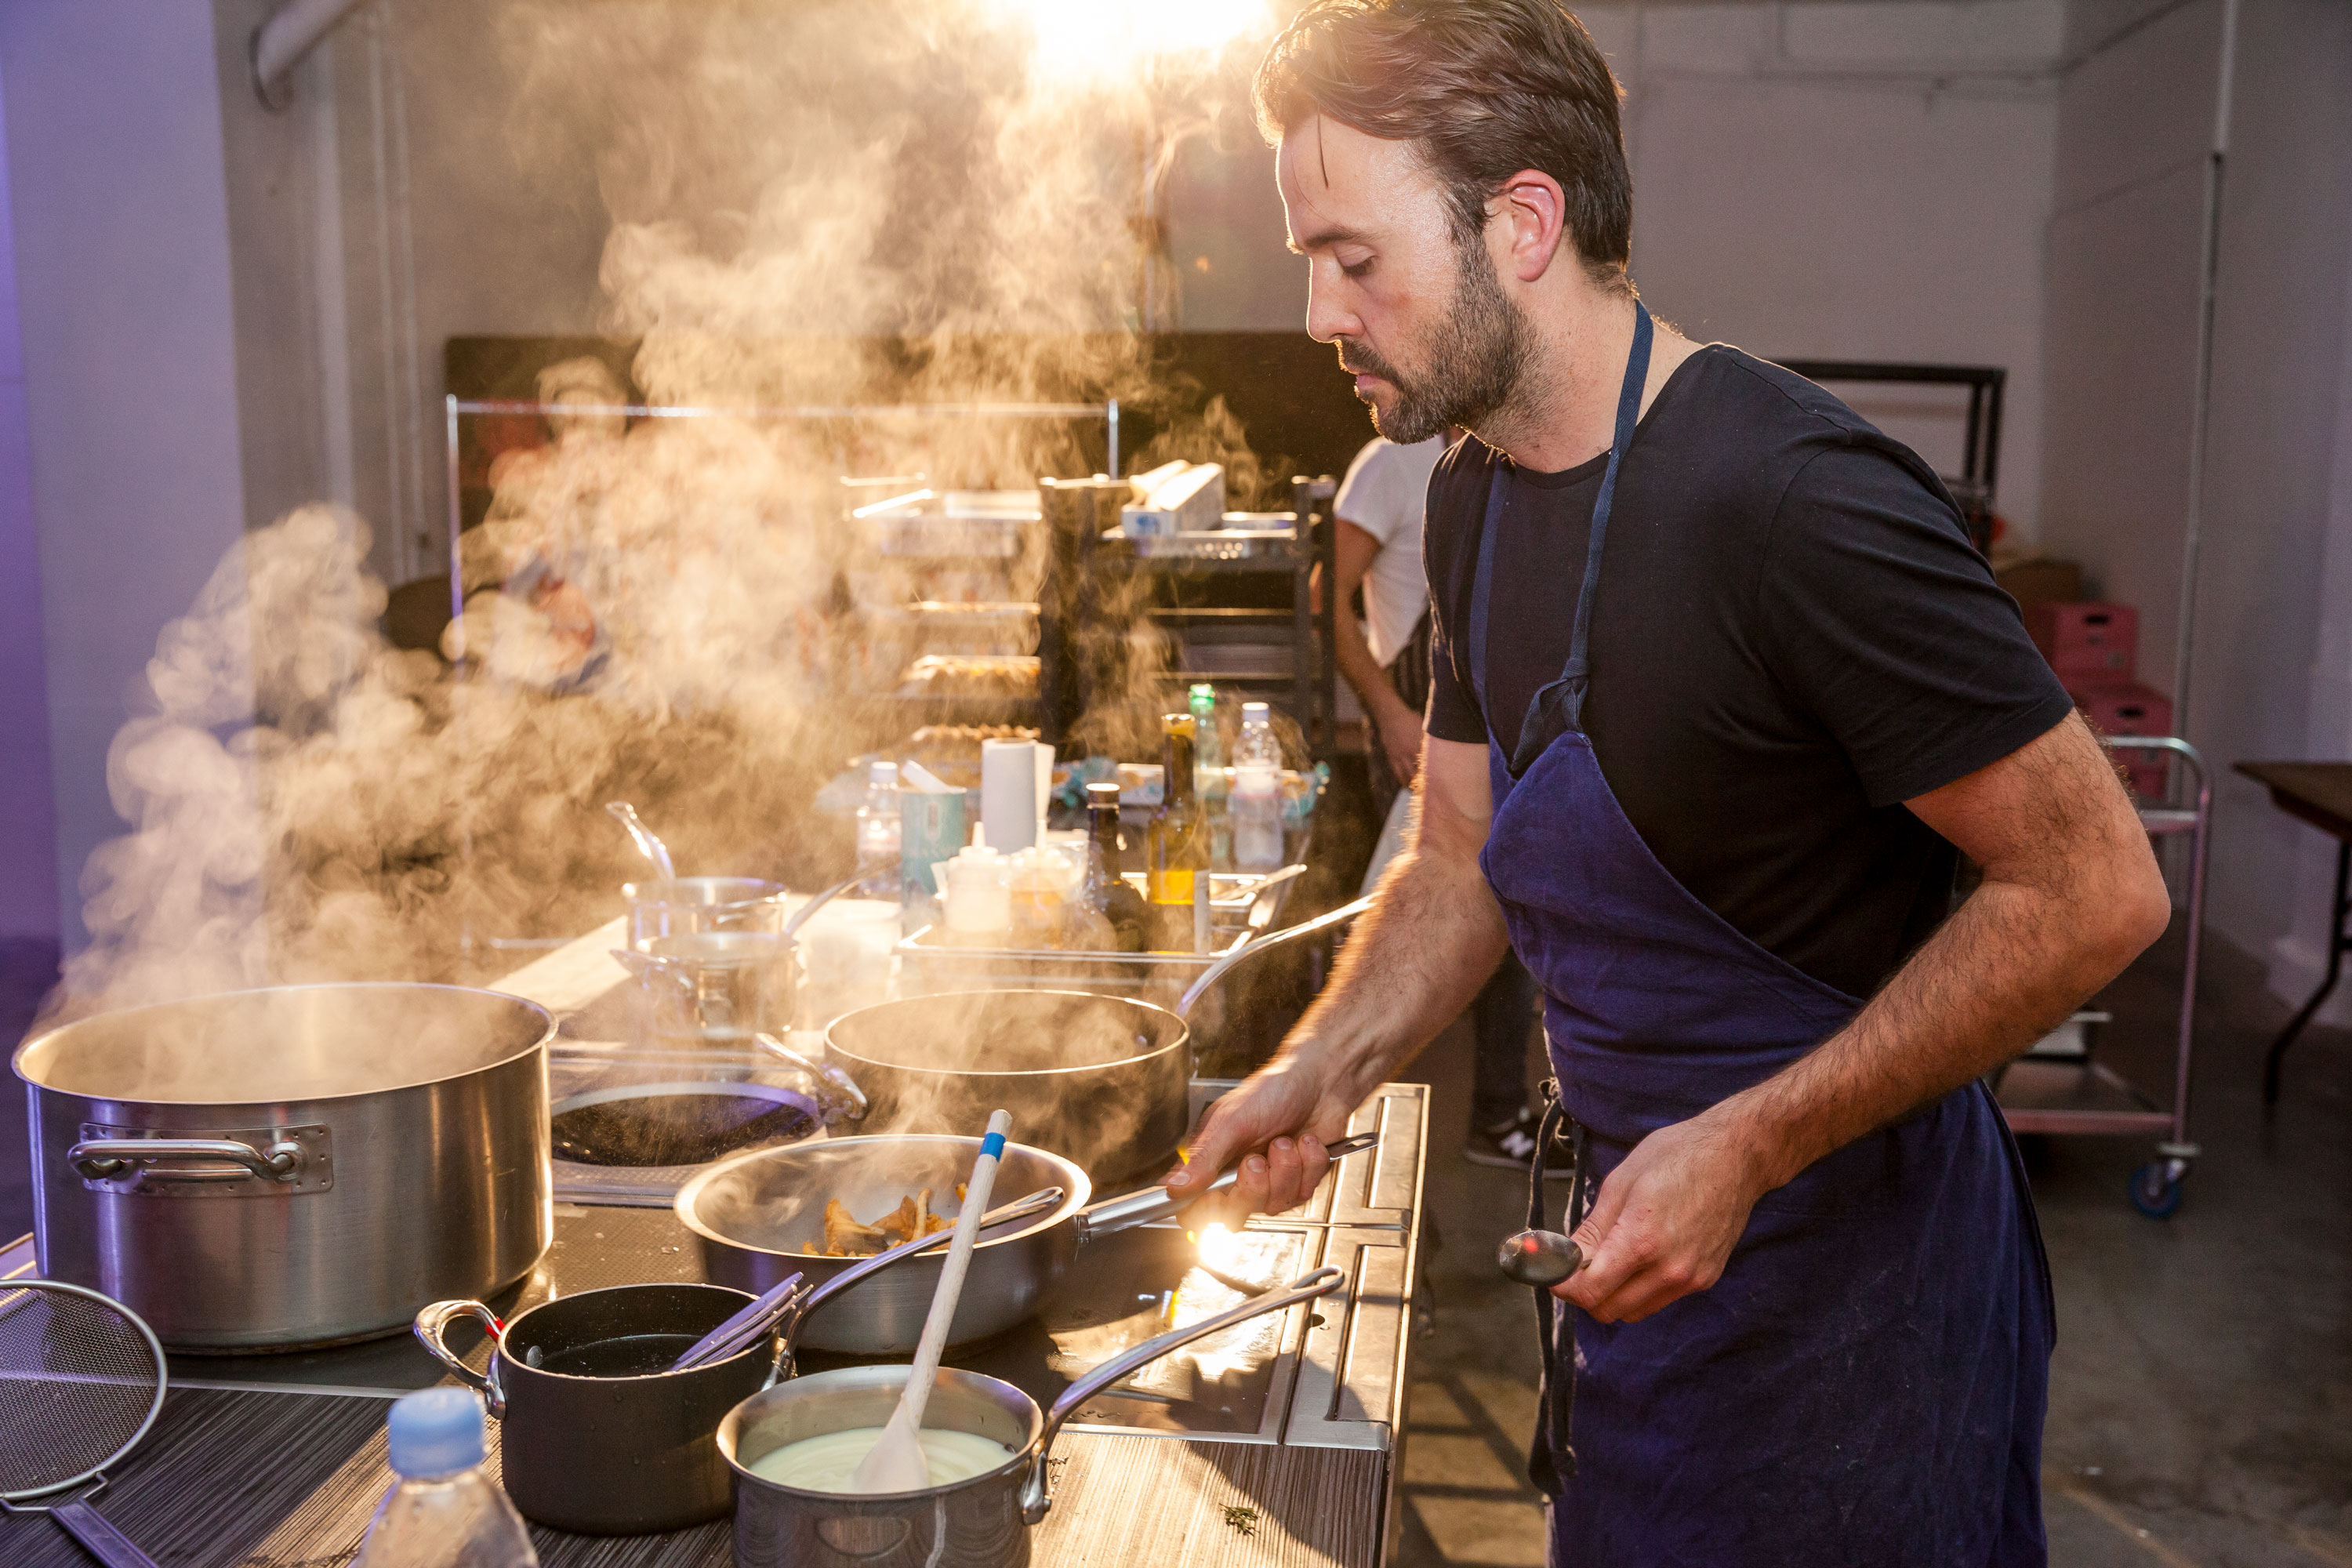 Chef Tim Spedding of Coombeshead Farm, Cornwall, who will cook at Giant Steps in Hackney Wick 1st and 2nd September 2018